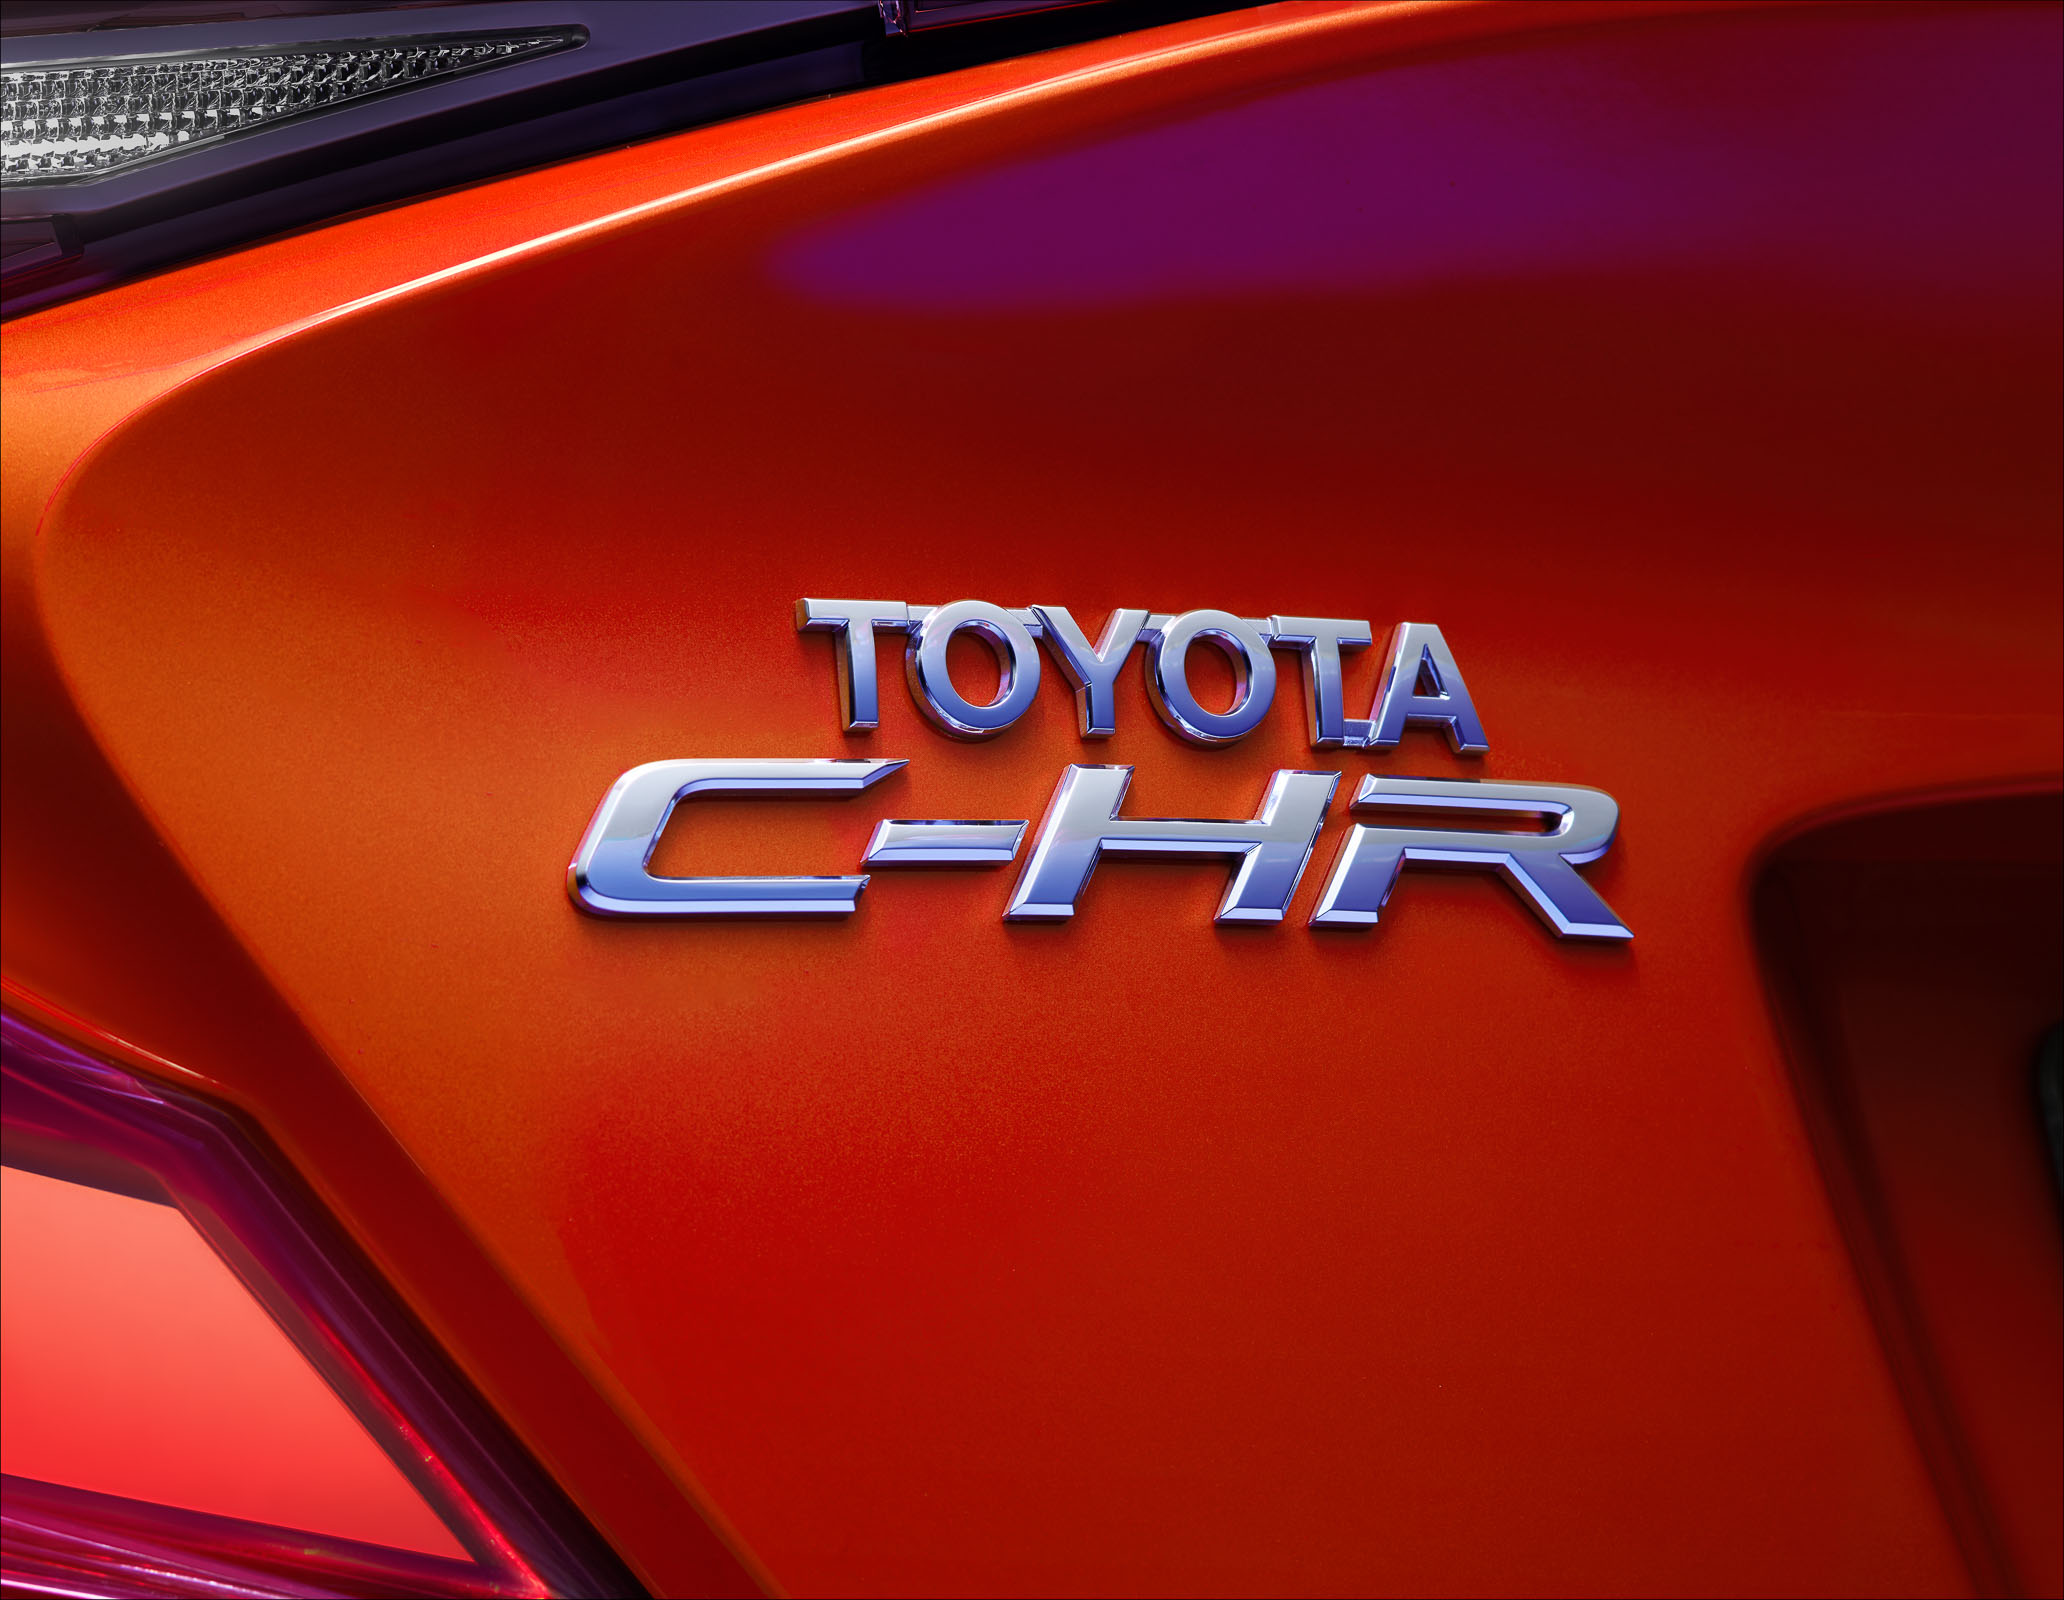 Toyota_CHR_HybridBadge_2_V03copy